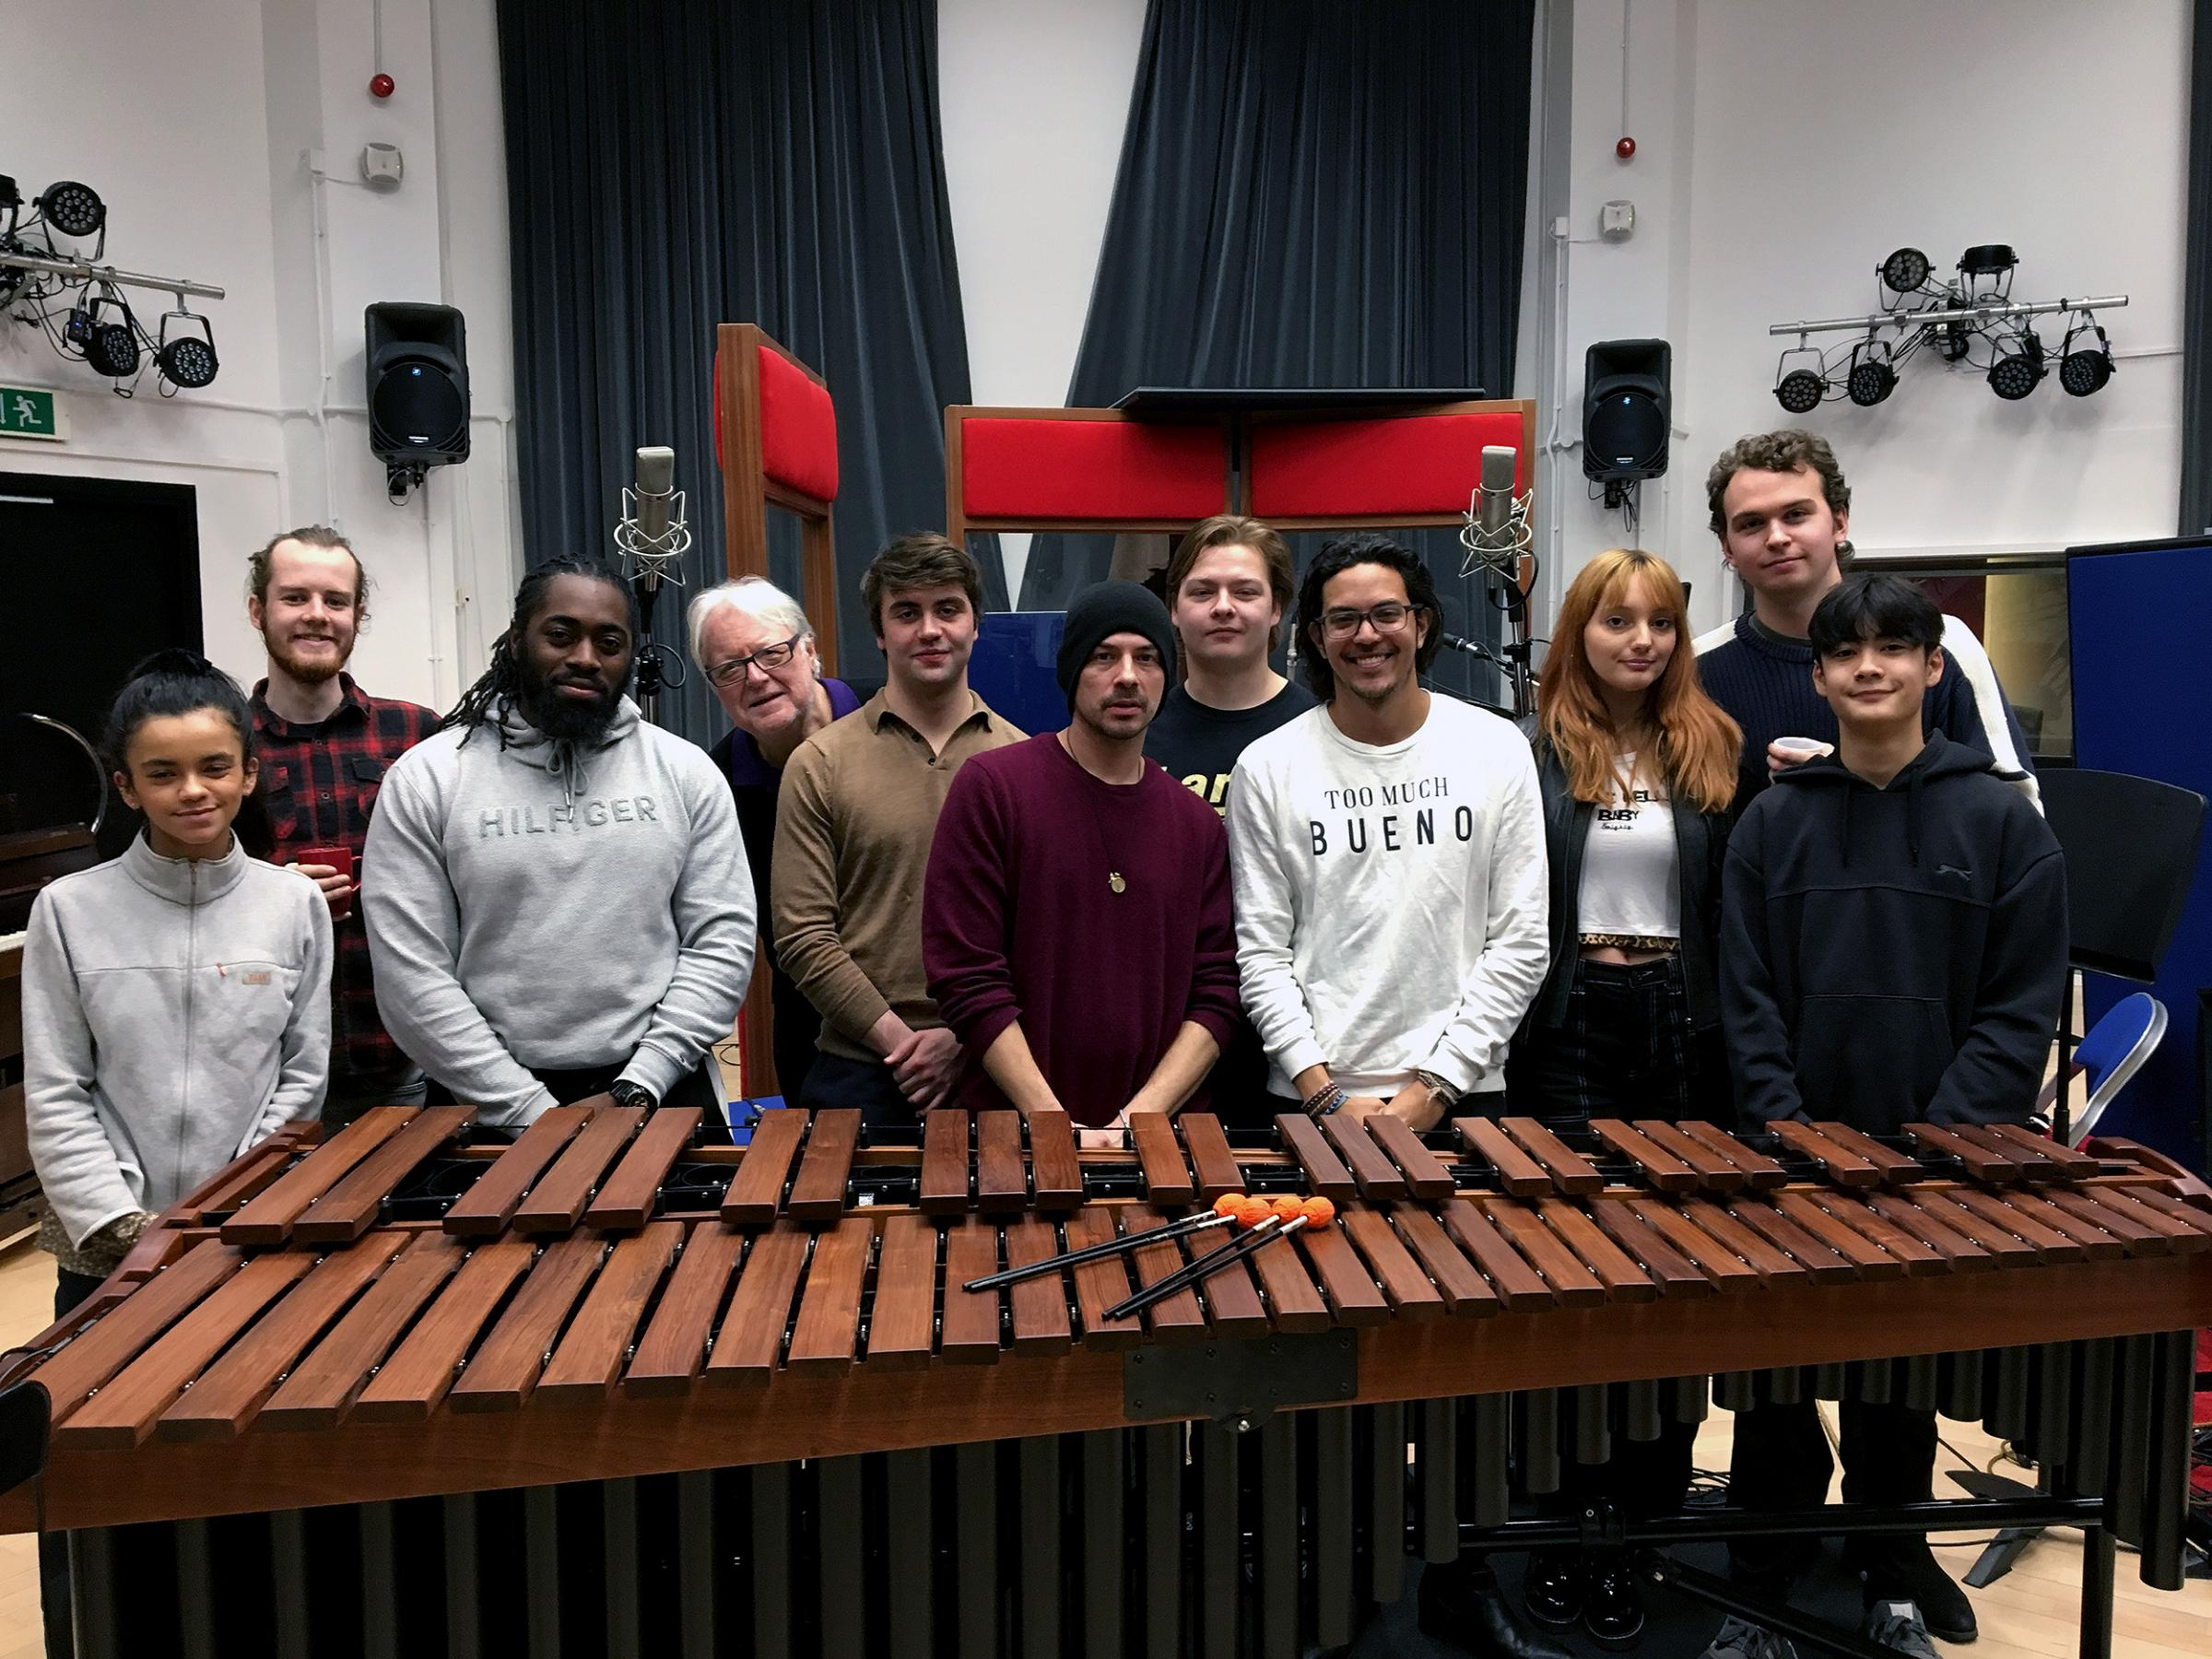 Visconti Studio Winter School 2019 with Chris Kimsey, band and student